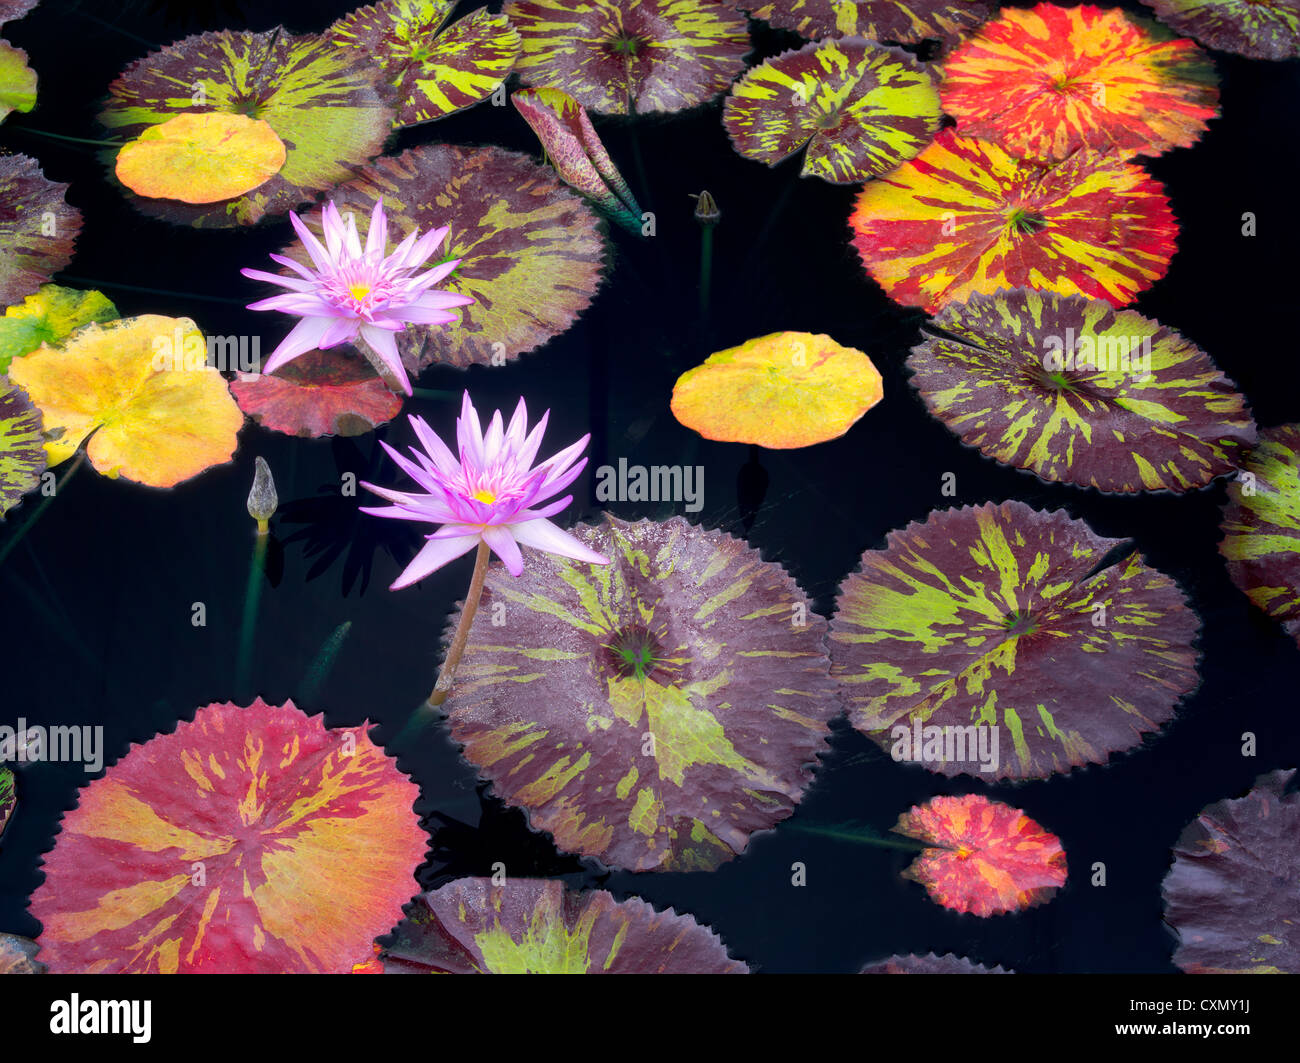 Tropical lilies and colorful leaves at Hughes Water Gardens, Oregon - Stock Image